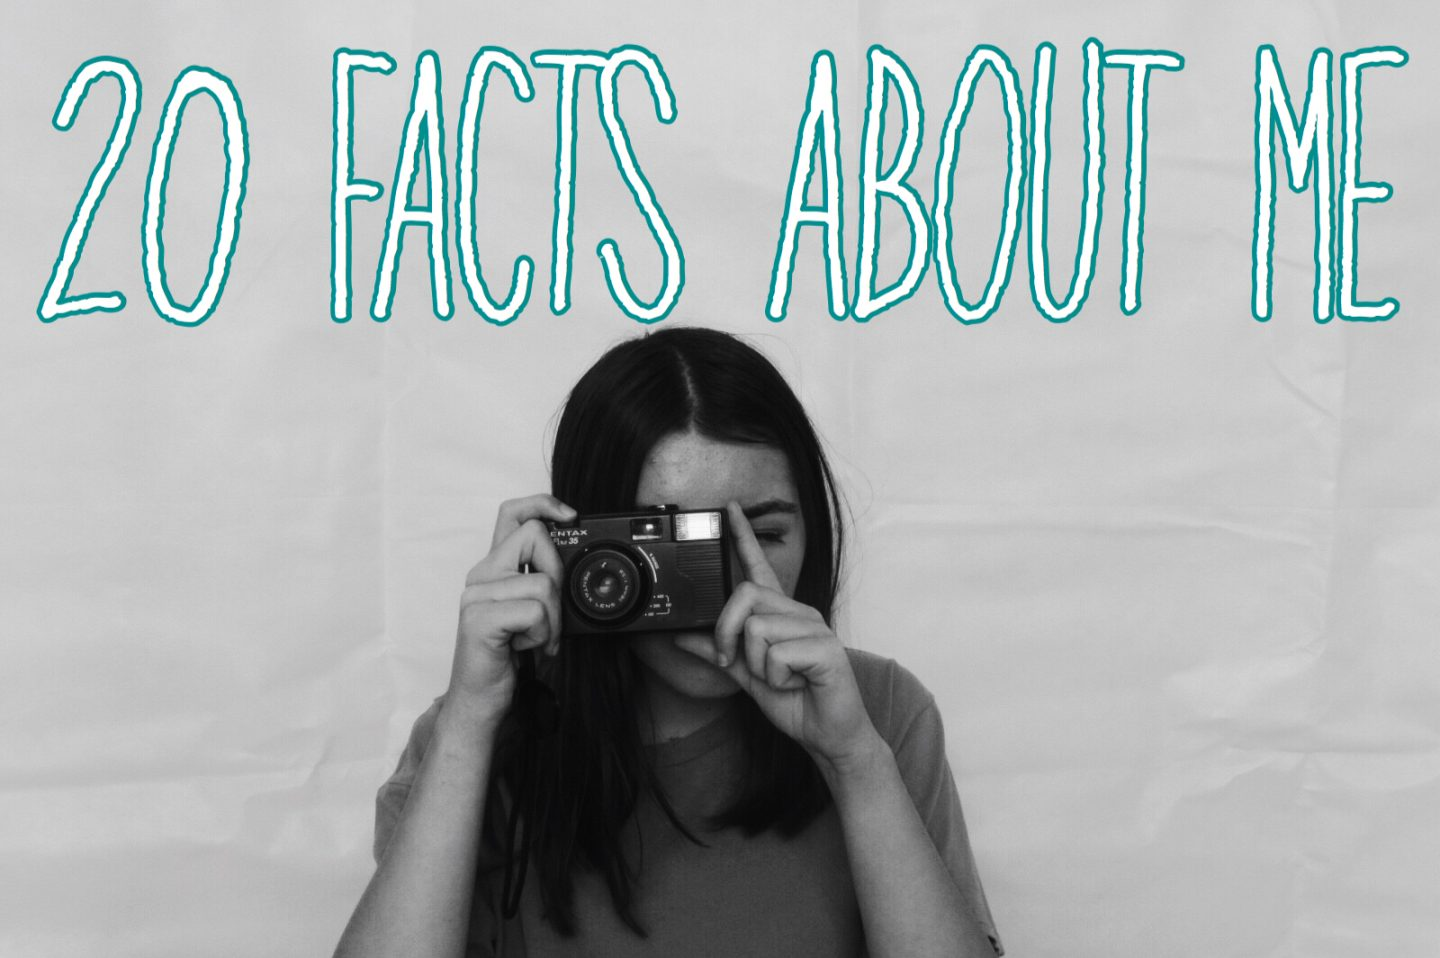 20 FACTS ABOUT ME // GET TO KNOW ME